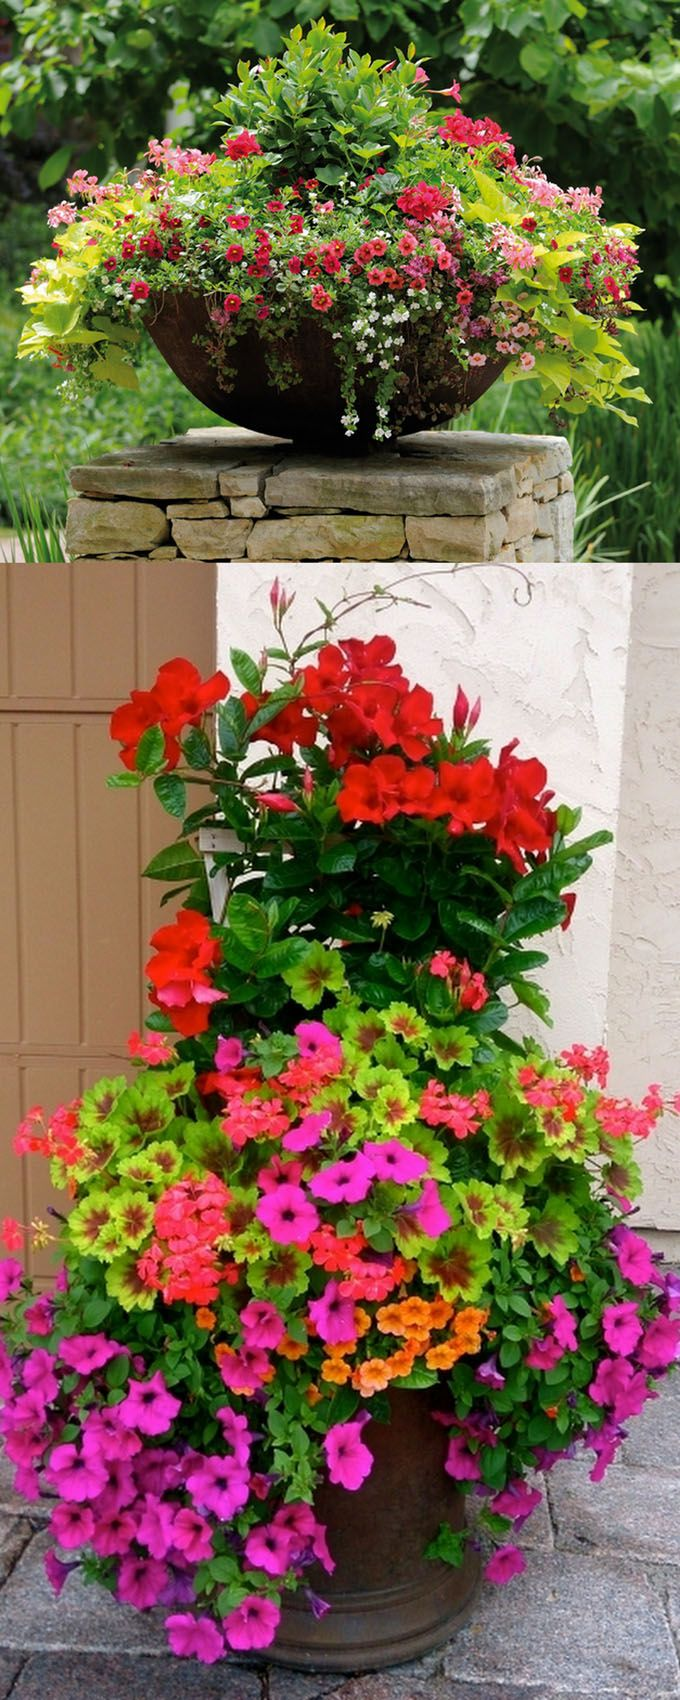 24 stunning container garden designs with plant list for each and lots of inspirations! Learn the designer secrets to these beautiful planting recipes.  - A Piece Of Rainbow  http://www.apieceofrainbow.com/container-garden-planting-designs/3/